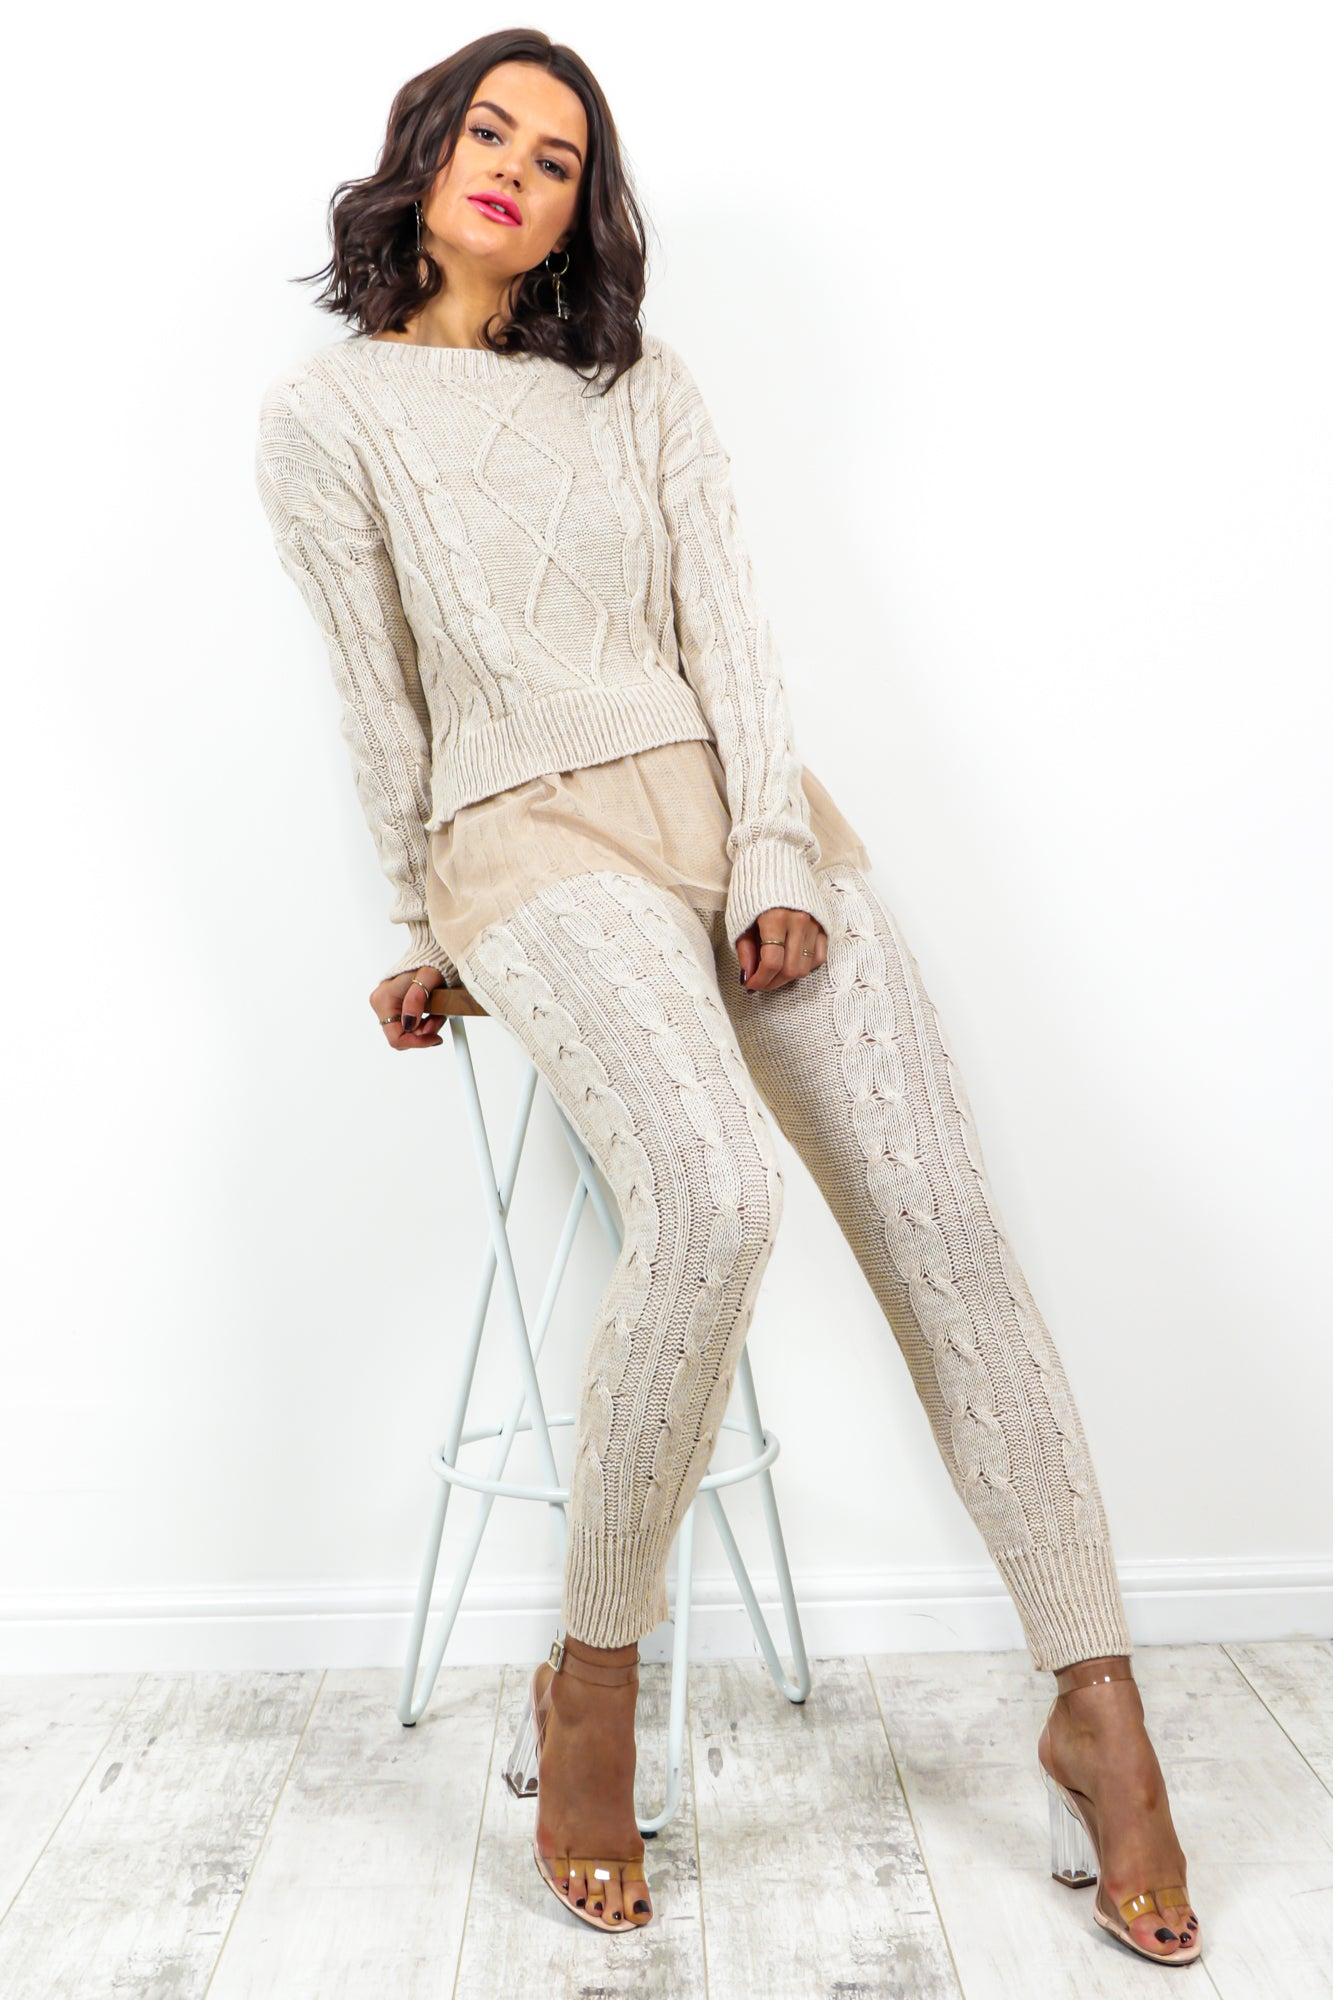 Lounge Around - Co-ord In OATMEAL